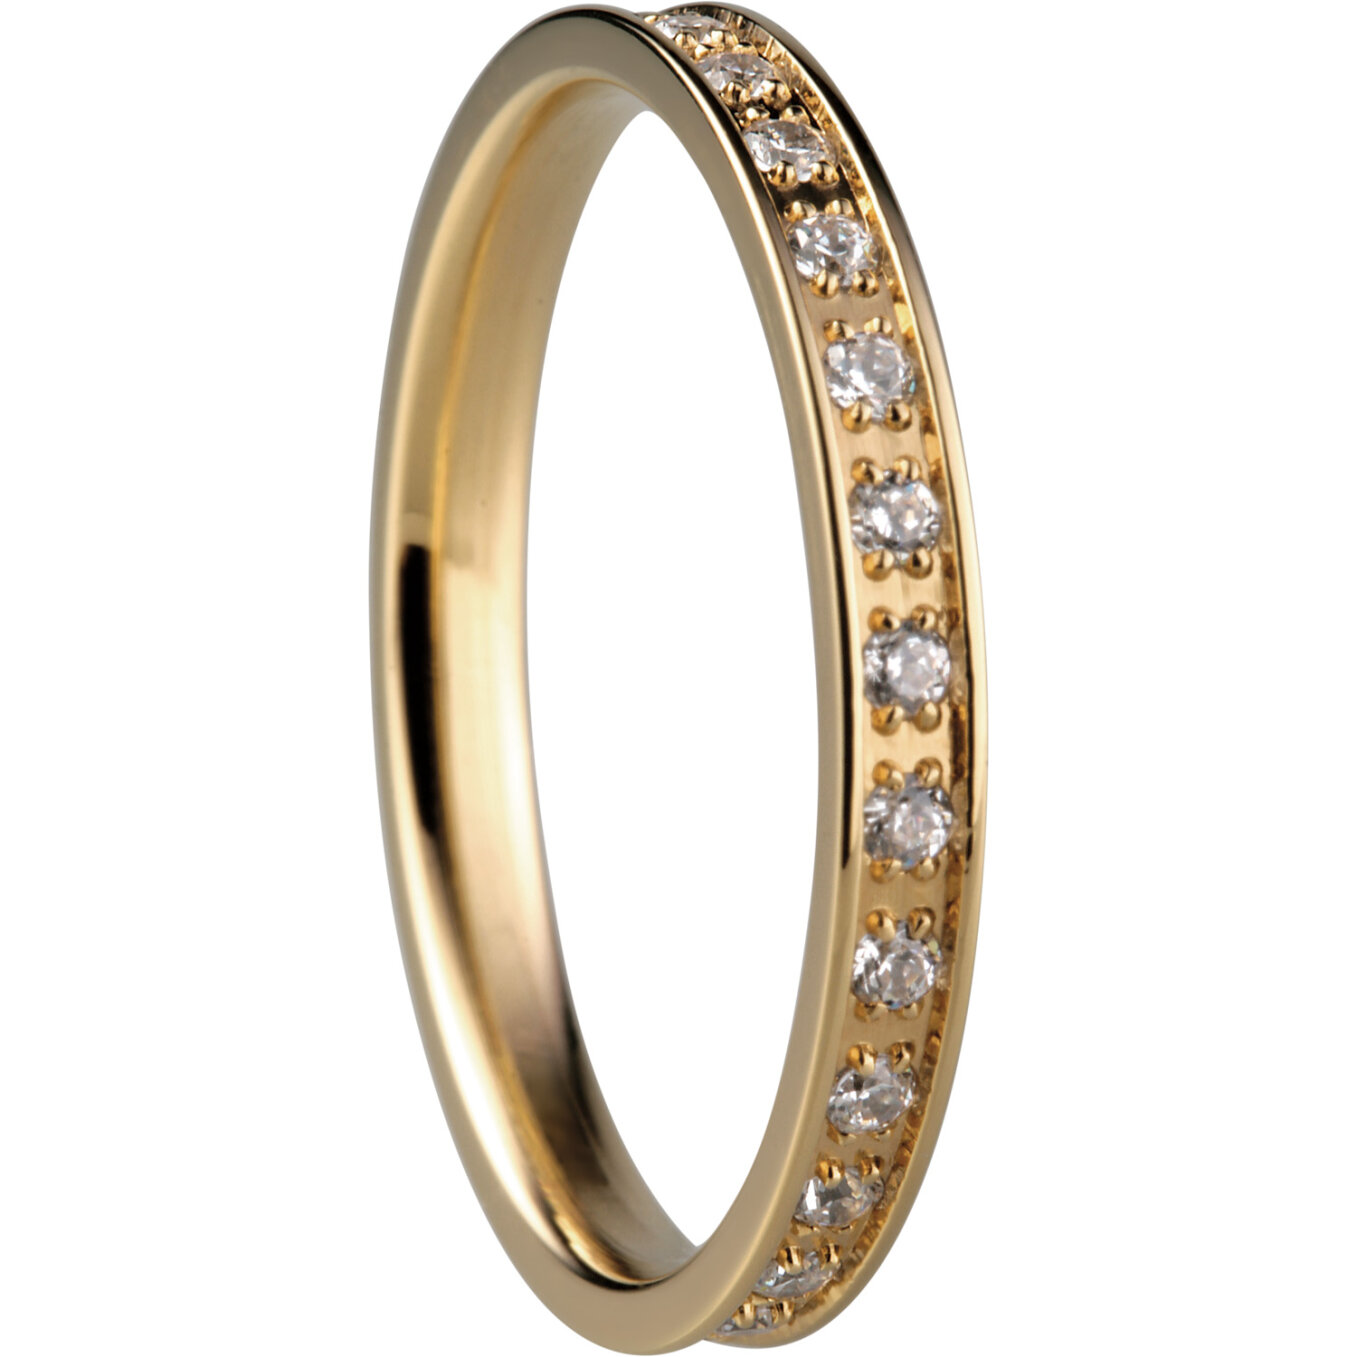 Bering Innenring 556-27-91 -Faith- gold